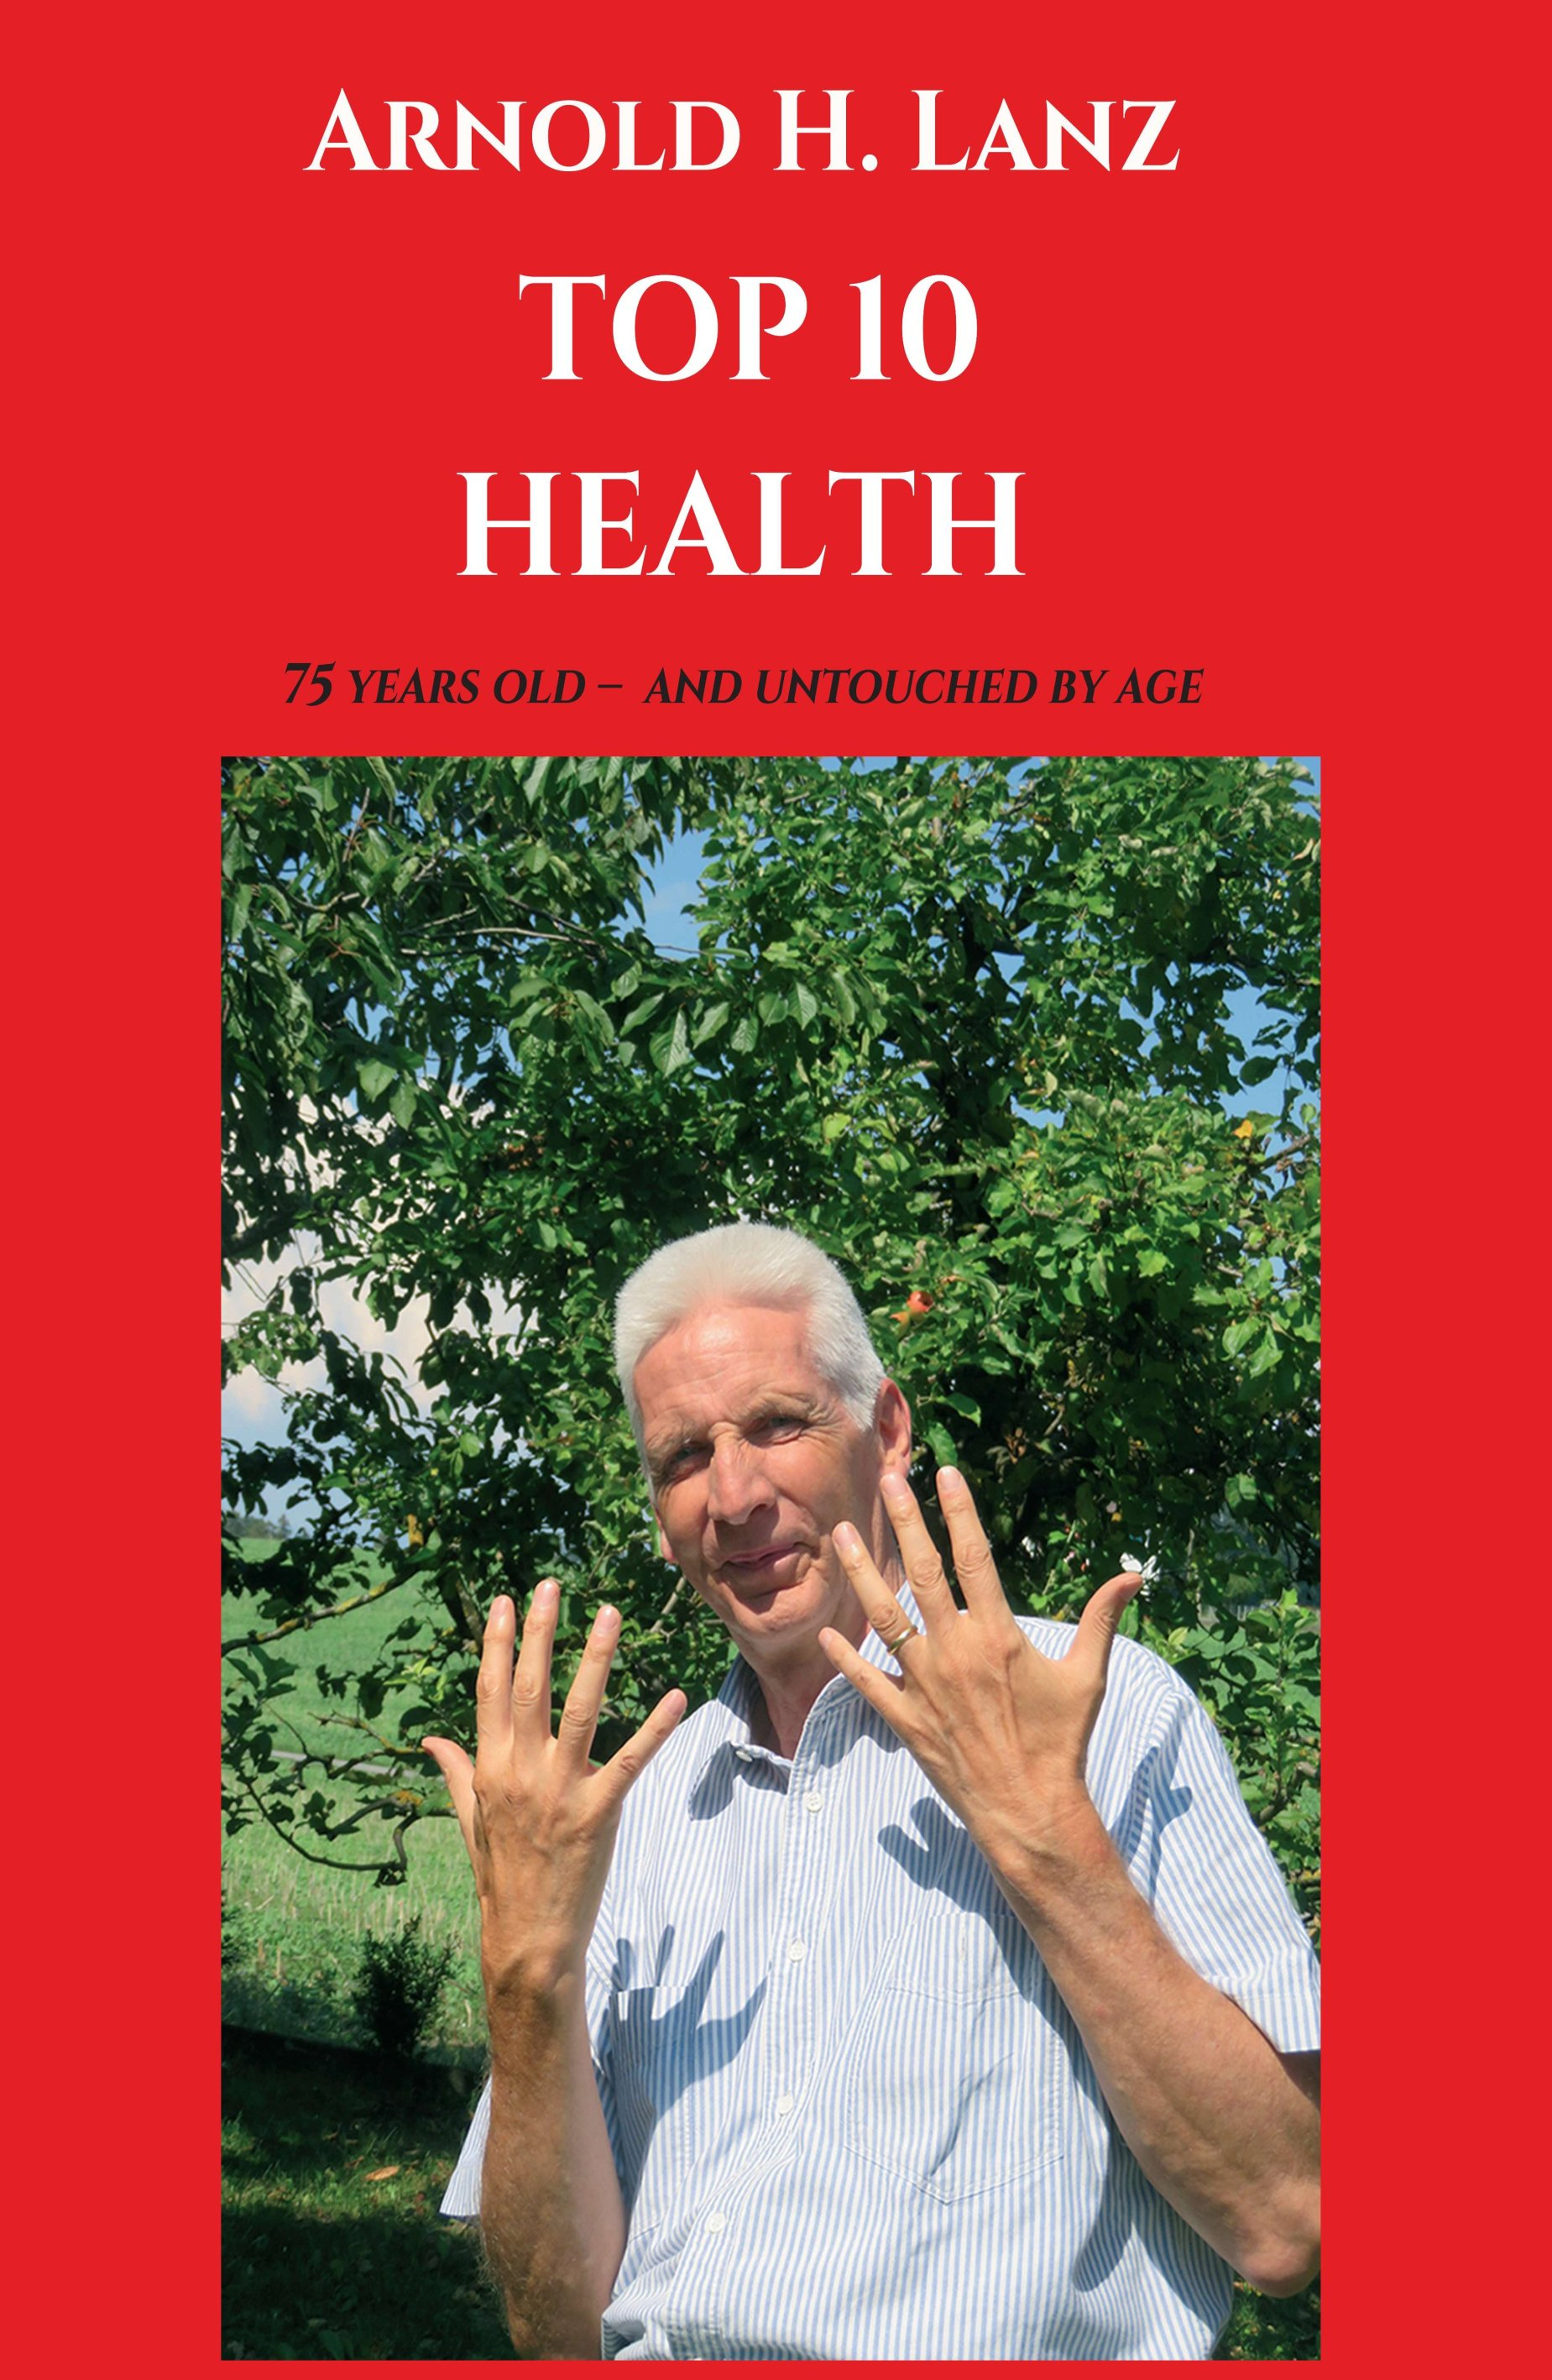 Top 10 Health - Self-help book for everyone who wants to live healthier